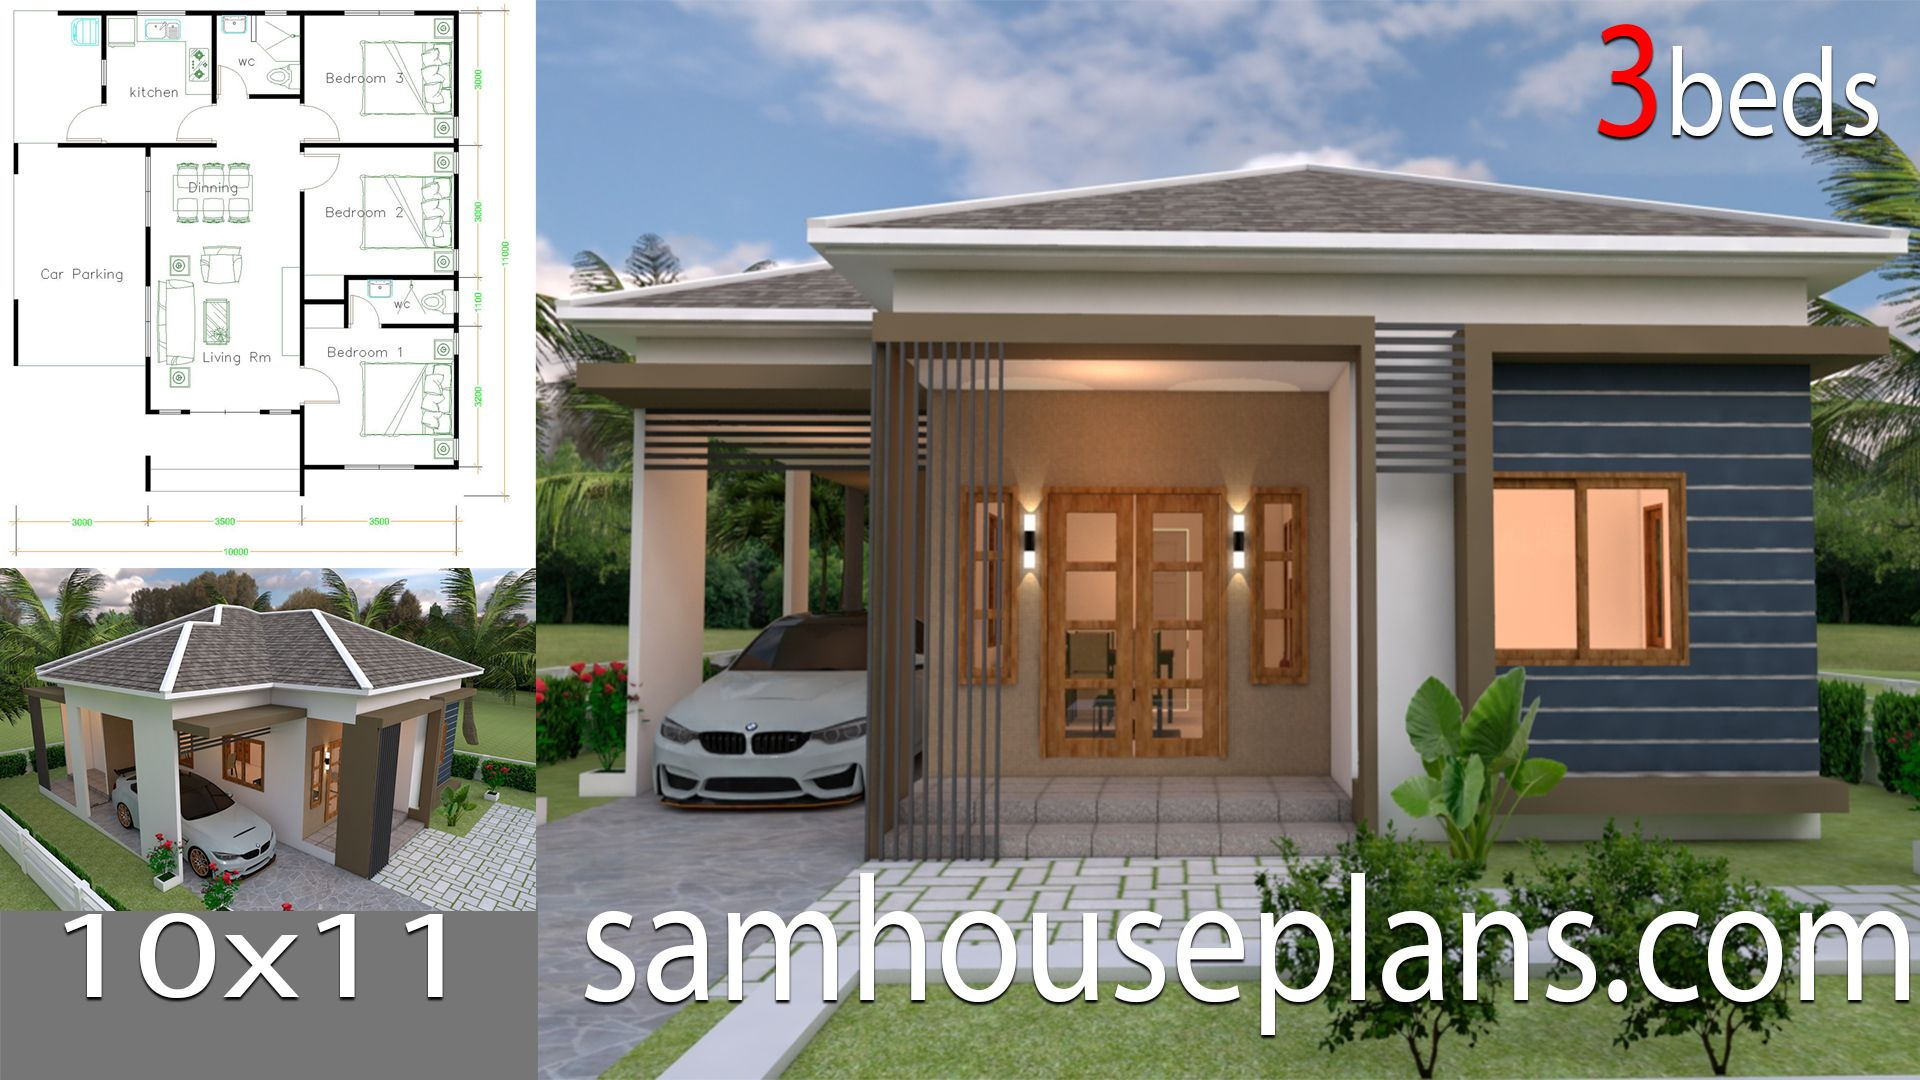 House Plans 10x11 With 3 Bedrooms Roof Tiles House Plans Free Downloads House Plans Small House Design Plans Home Design Plans